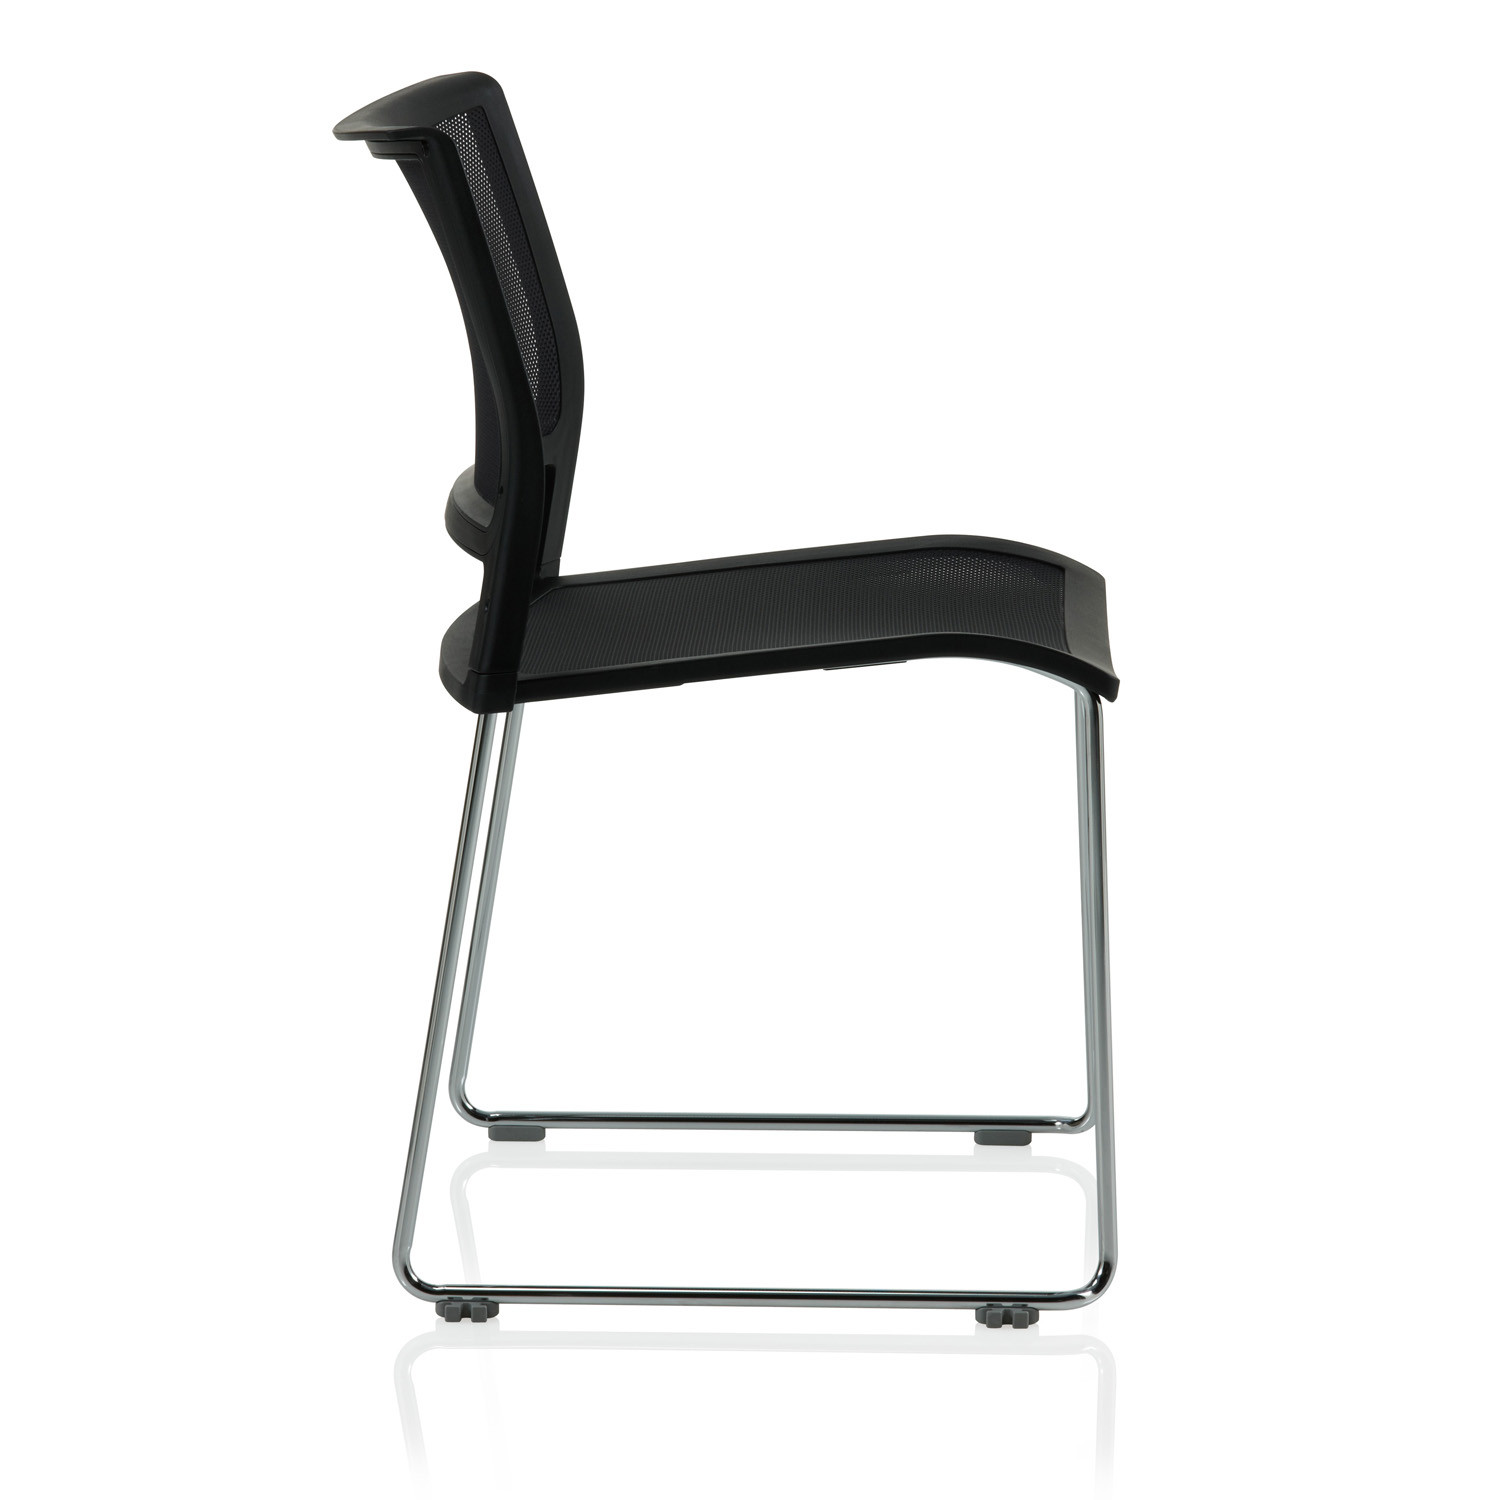 Opt 4 Training Chair by KI